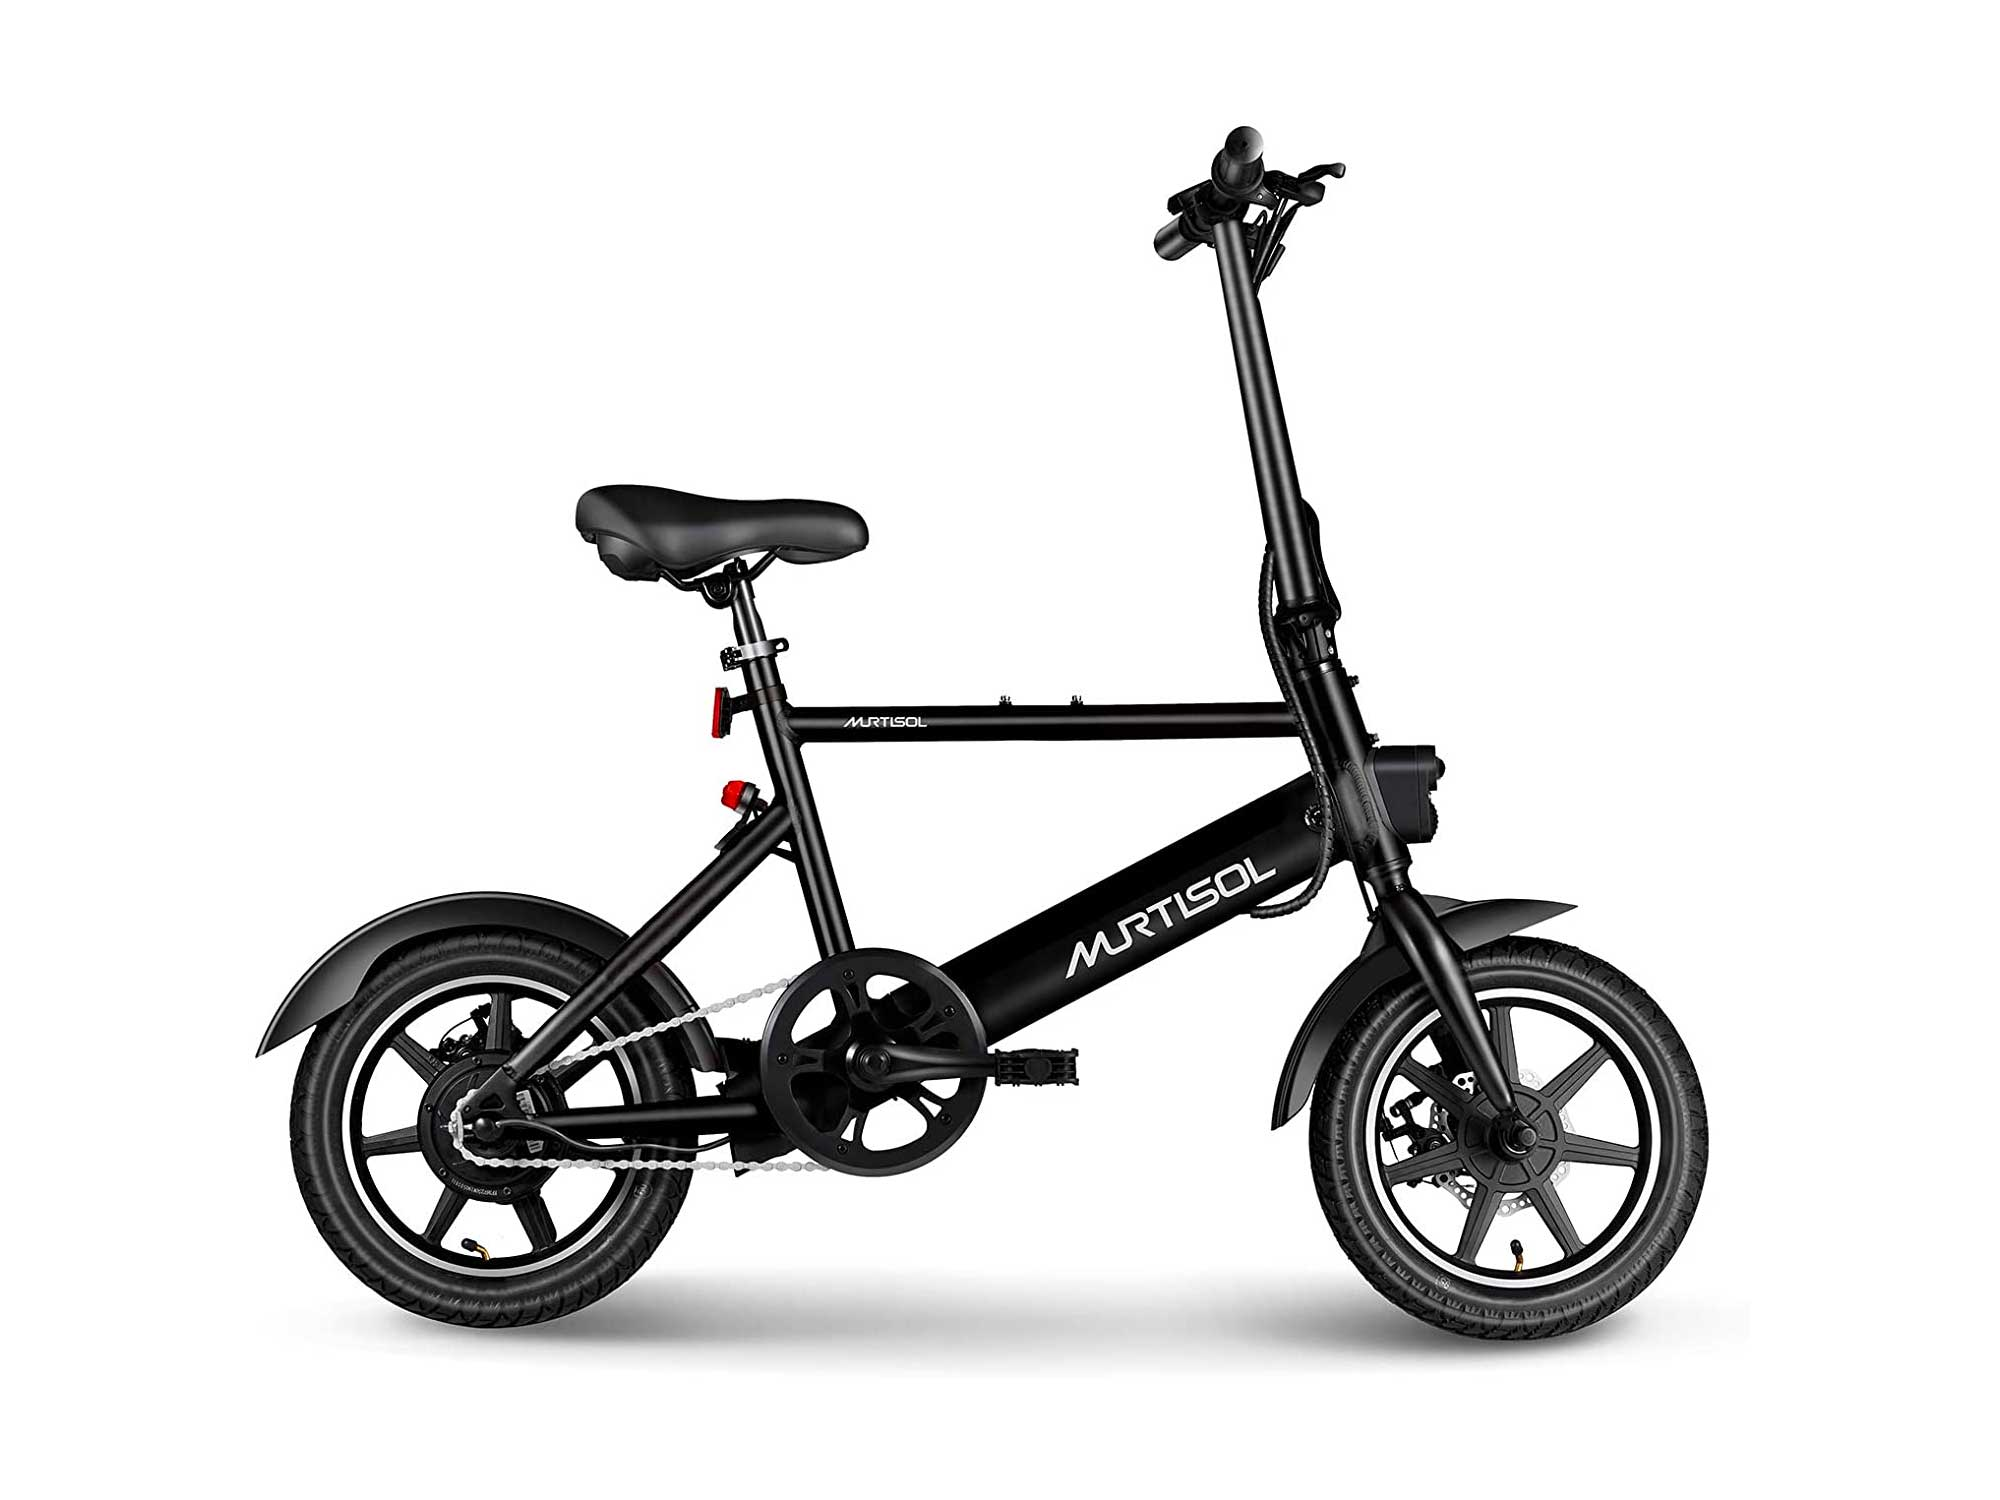 Murtisol Electric Bicycles Aluminum Adult Ebike 36V 250W, 6AH Lithium Battery, Dual Disc Brakes, 3 Digital Adjustable Speed, Hidden Battery Design, Foldable Handle